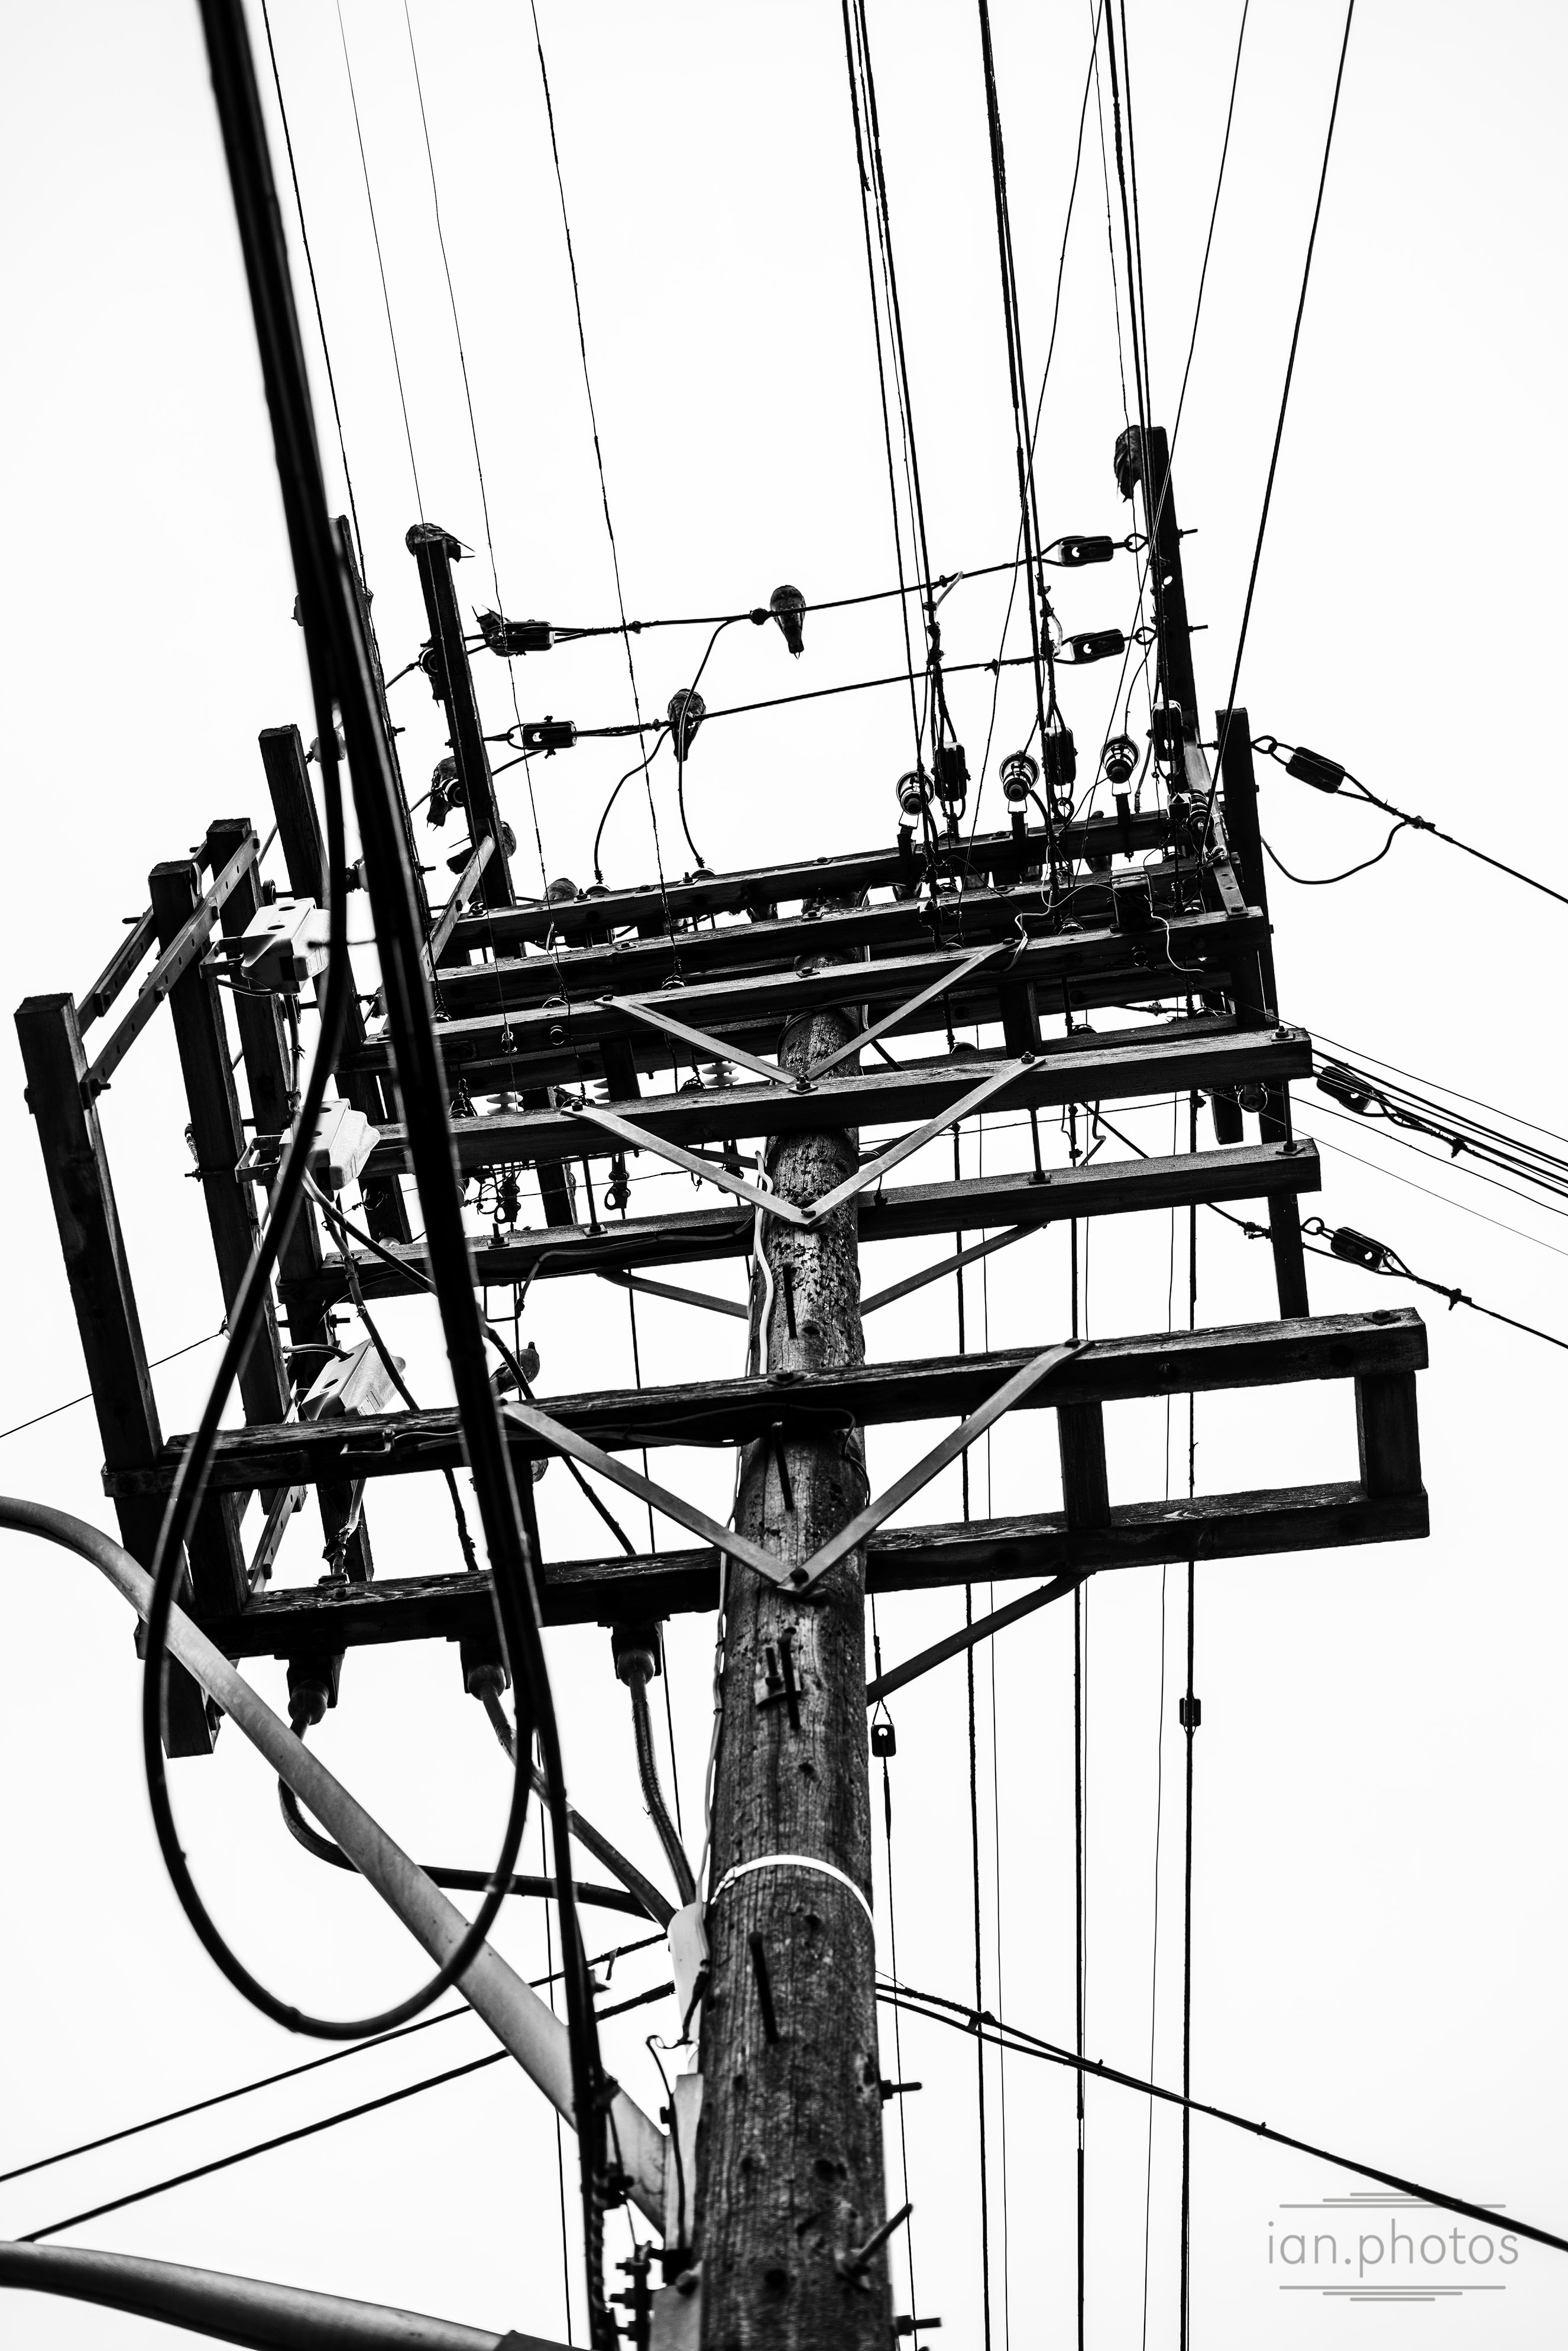 Black and White Photo Powerlines and pole with pigeons perched on. | ian.photos